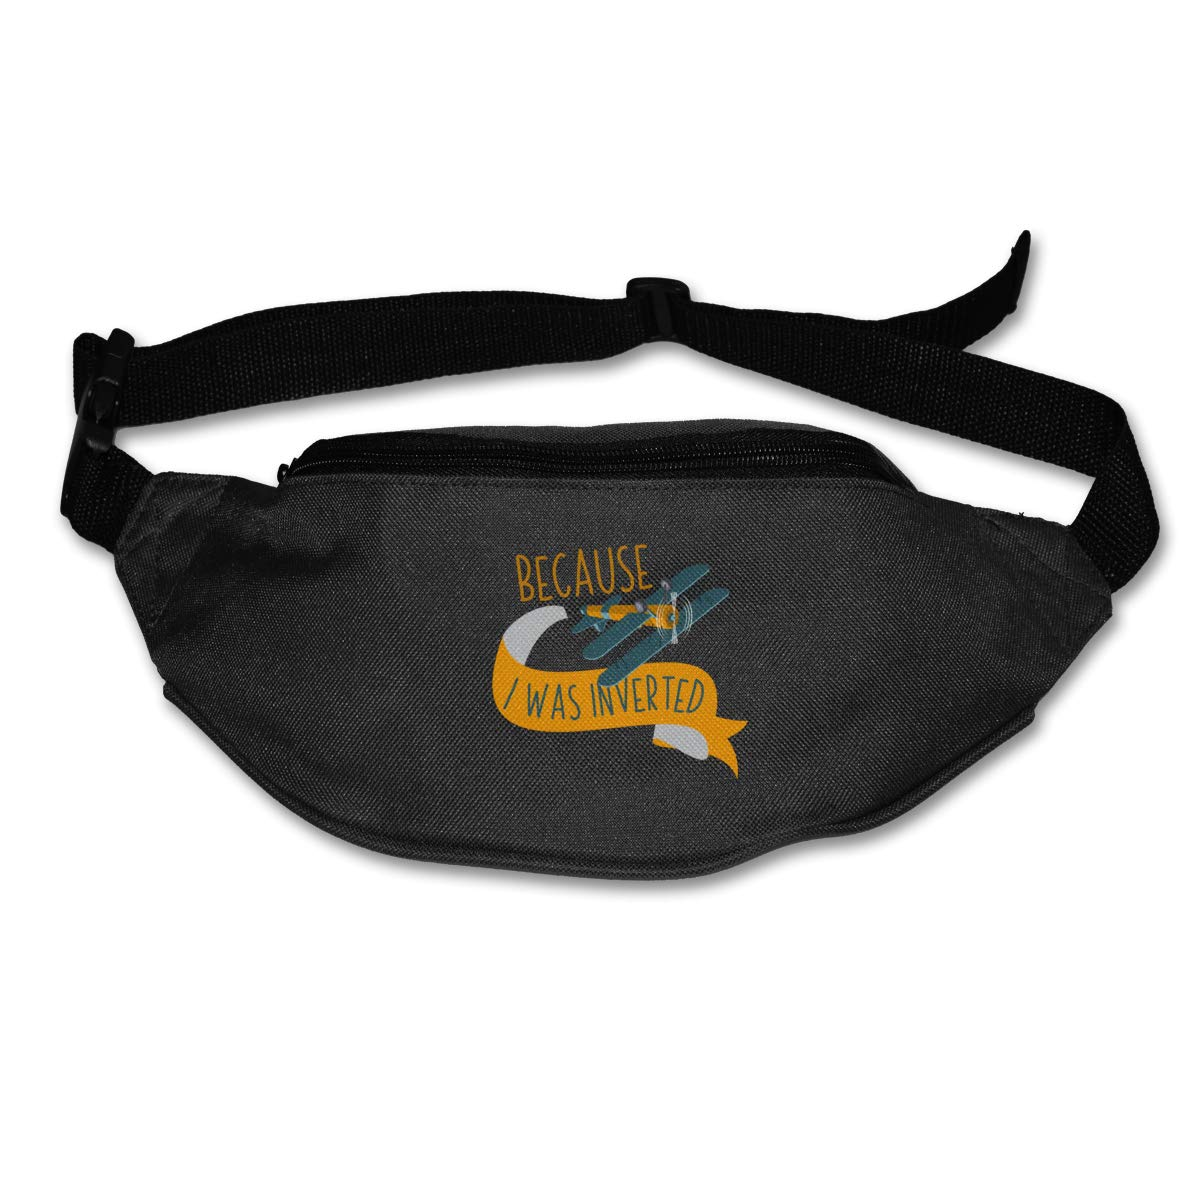 Because I Was Inverted Sport Waist Packs Fanny Pack Adjustable For Travel